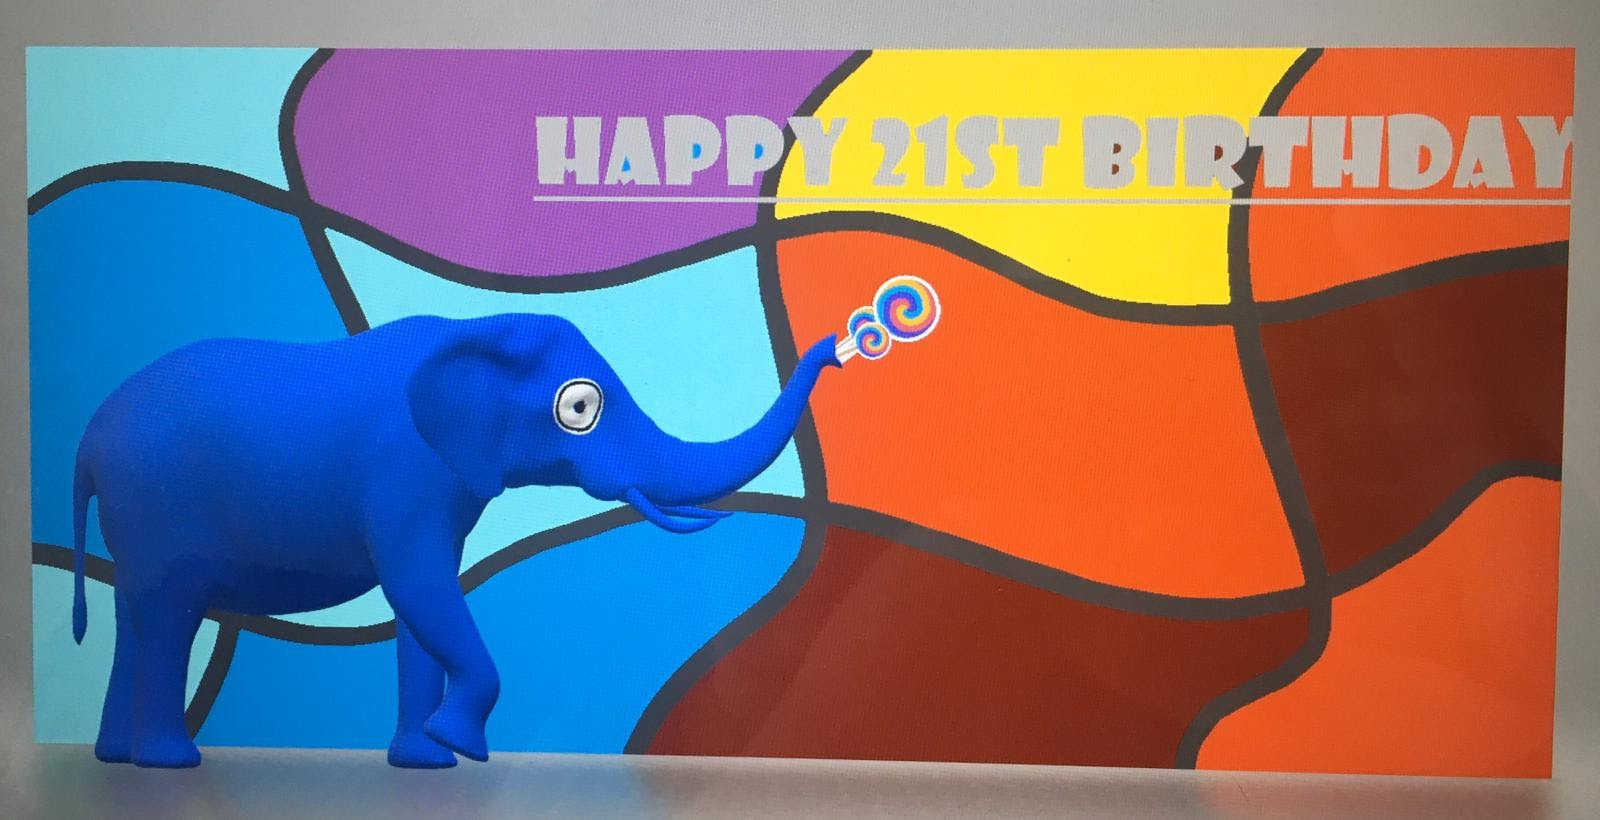 Digital entry reading Happy 21st Birthday with a image of an elephant coloured blue on the left hand side